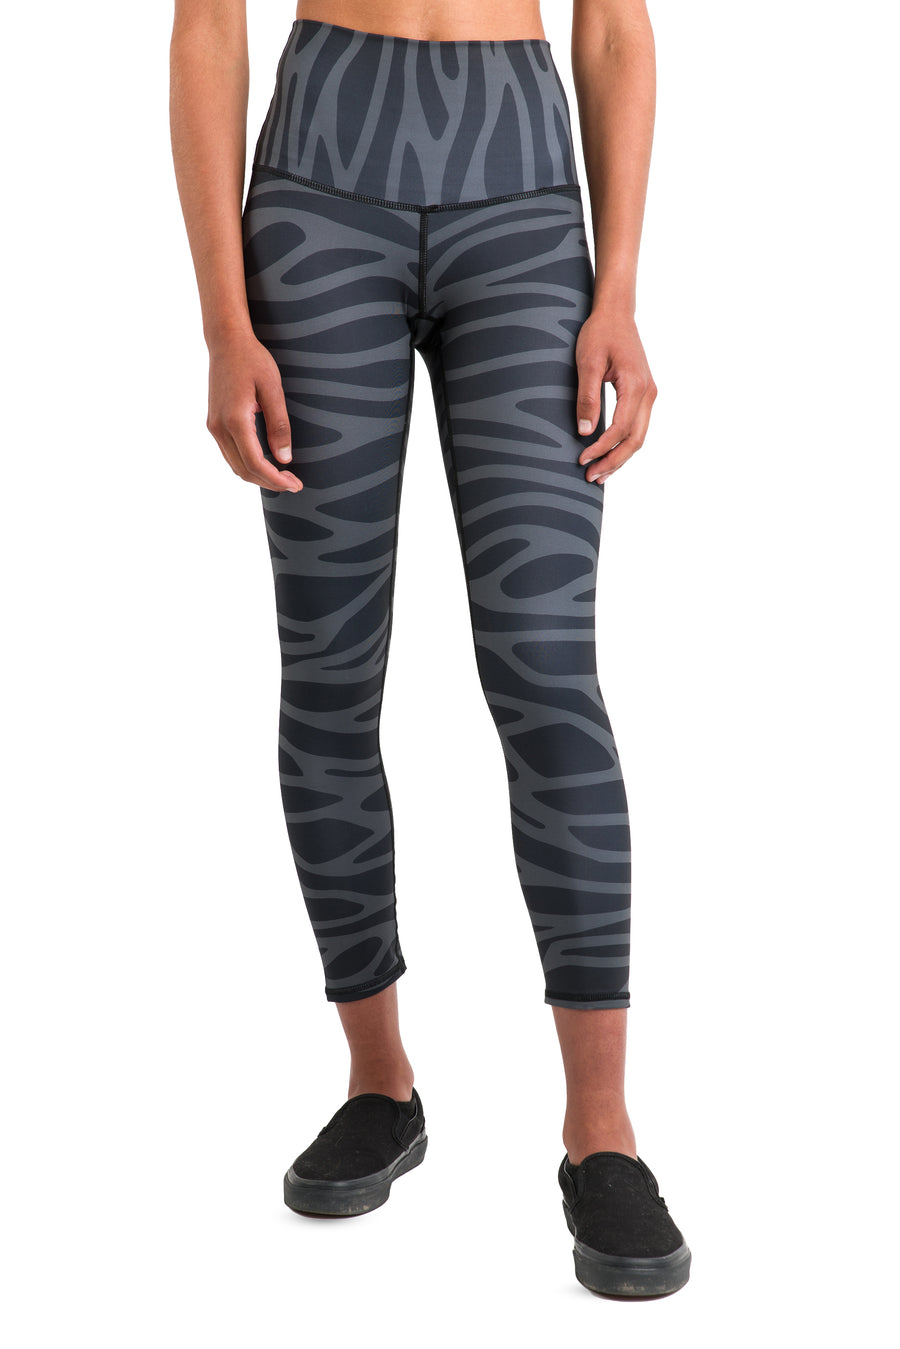 Eco, 7/8 Length, High -Waisted Leggings (Black + Grey Pattern)